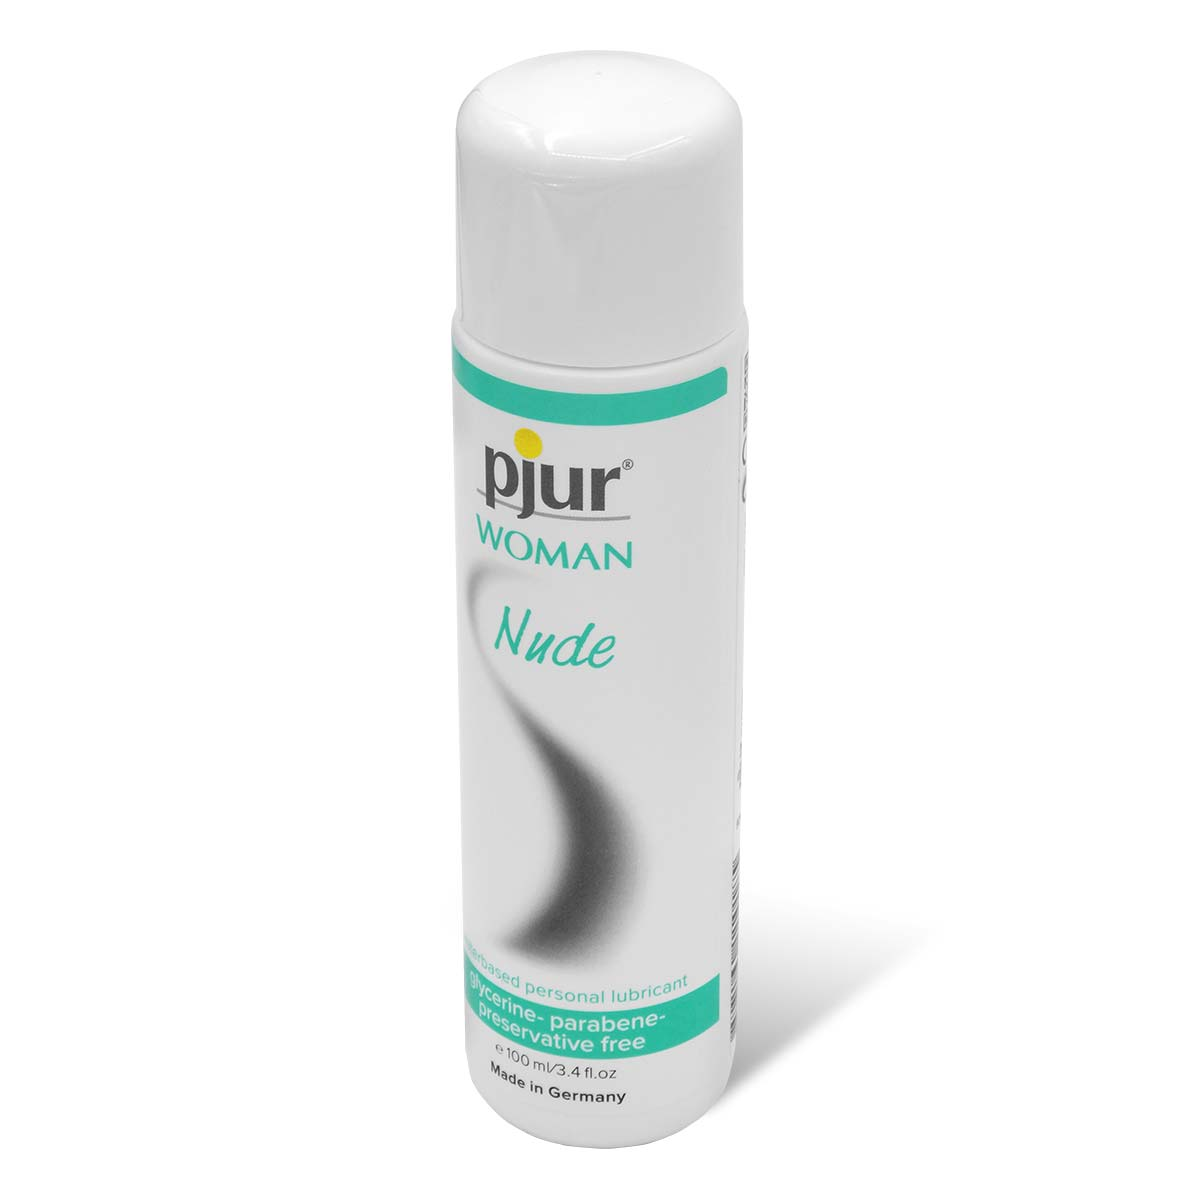 pjur WOMAN Nude 100ml Water-based Lubricant